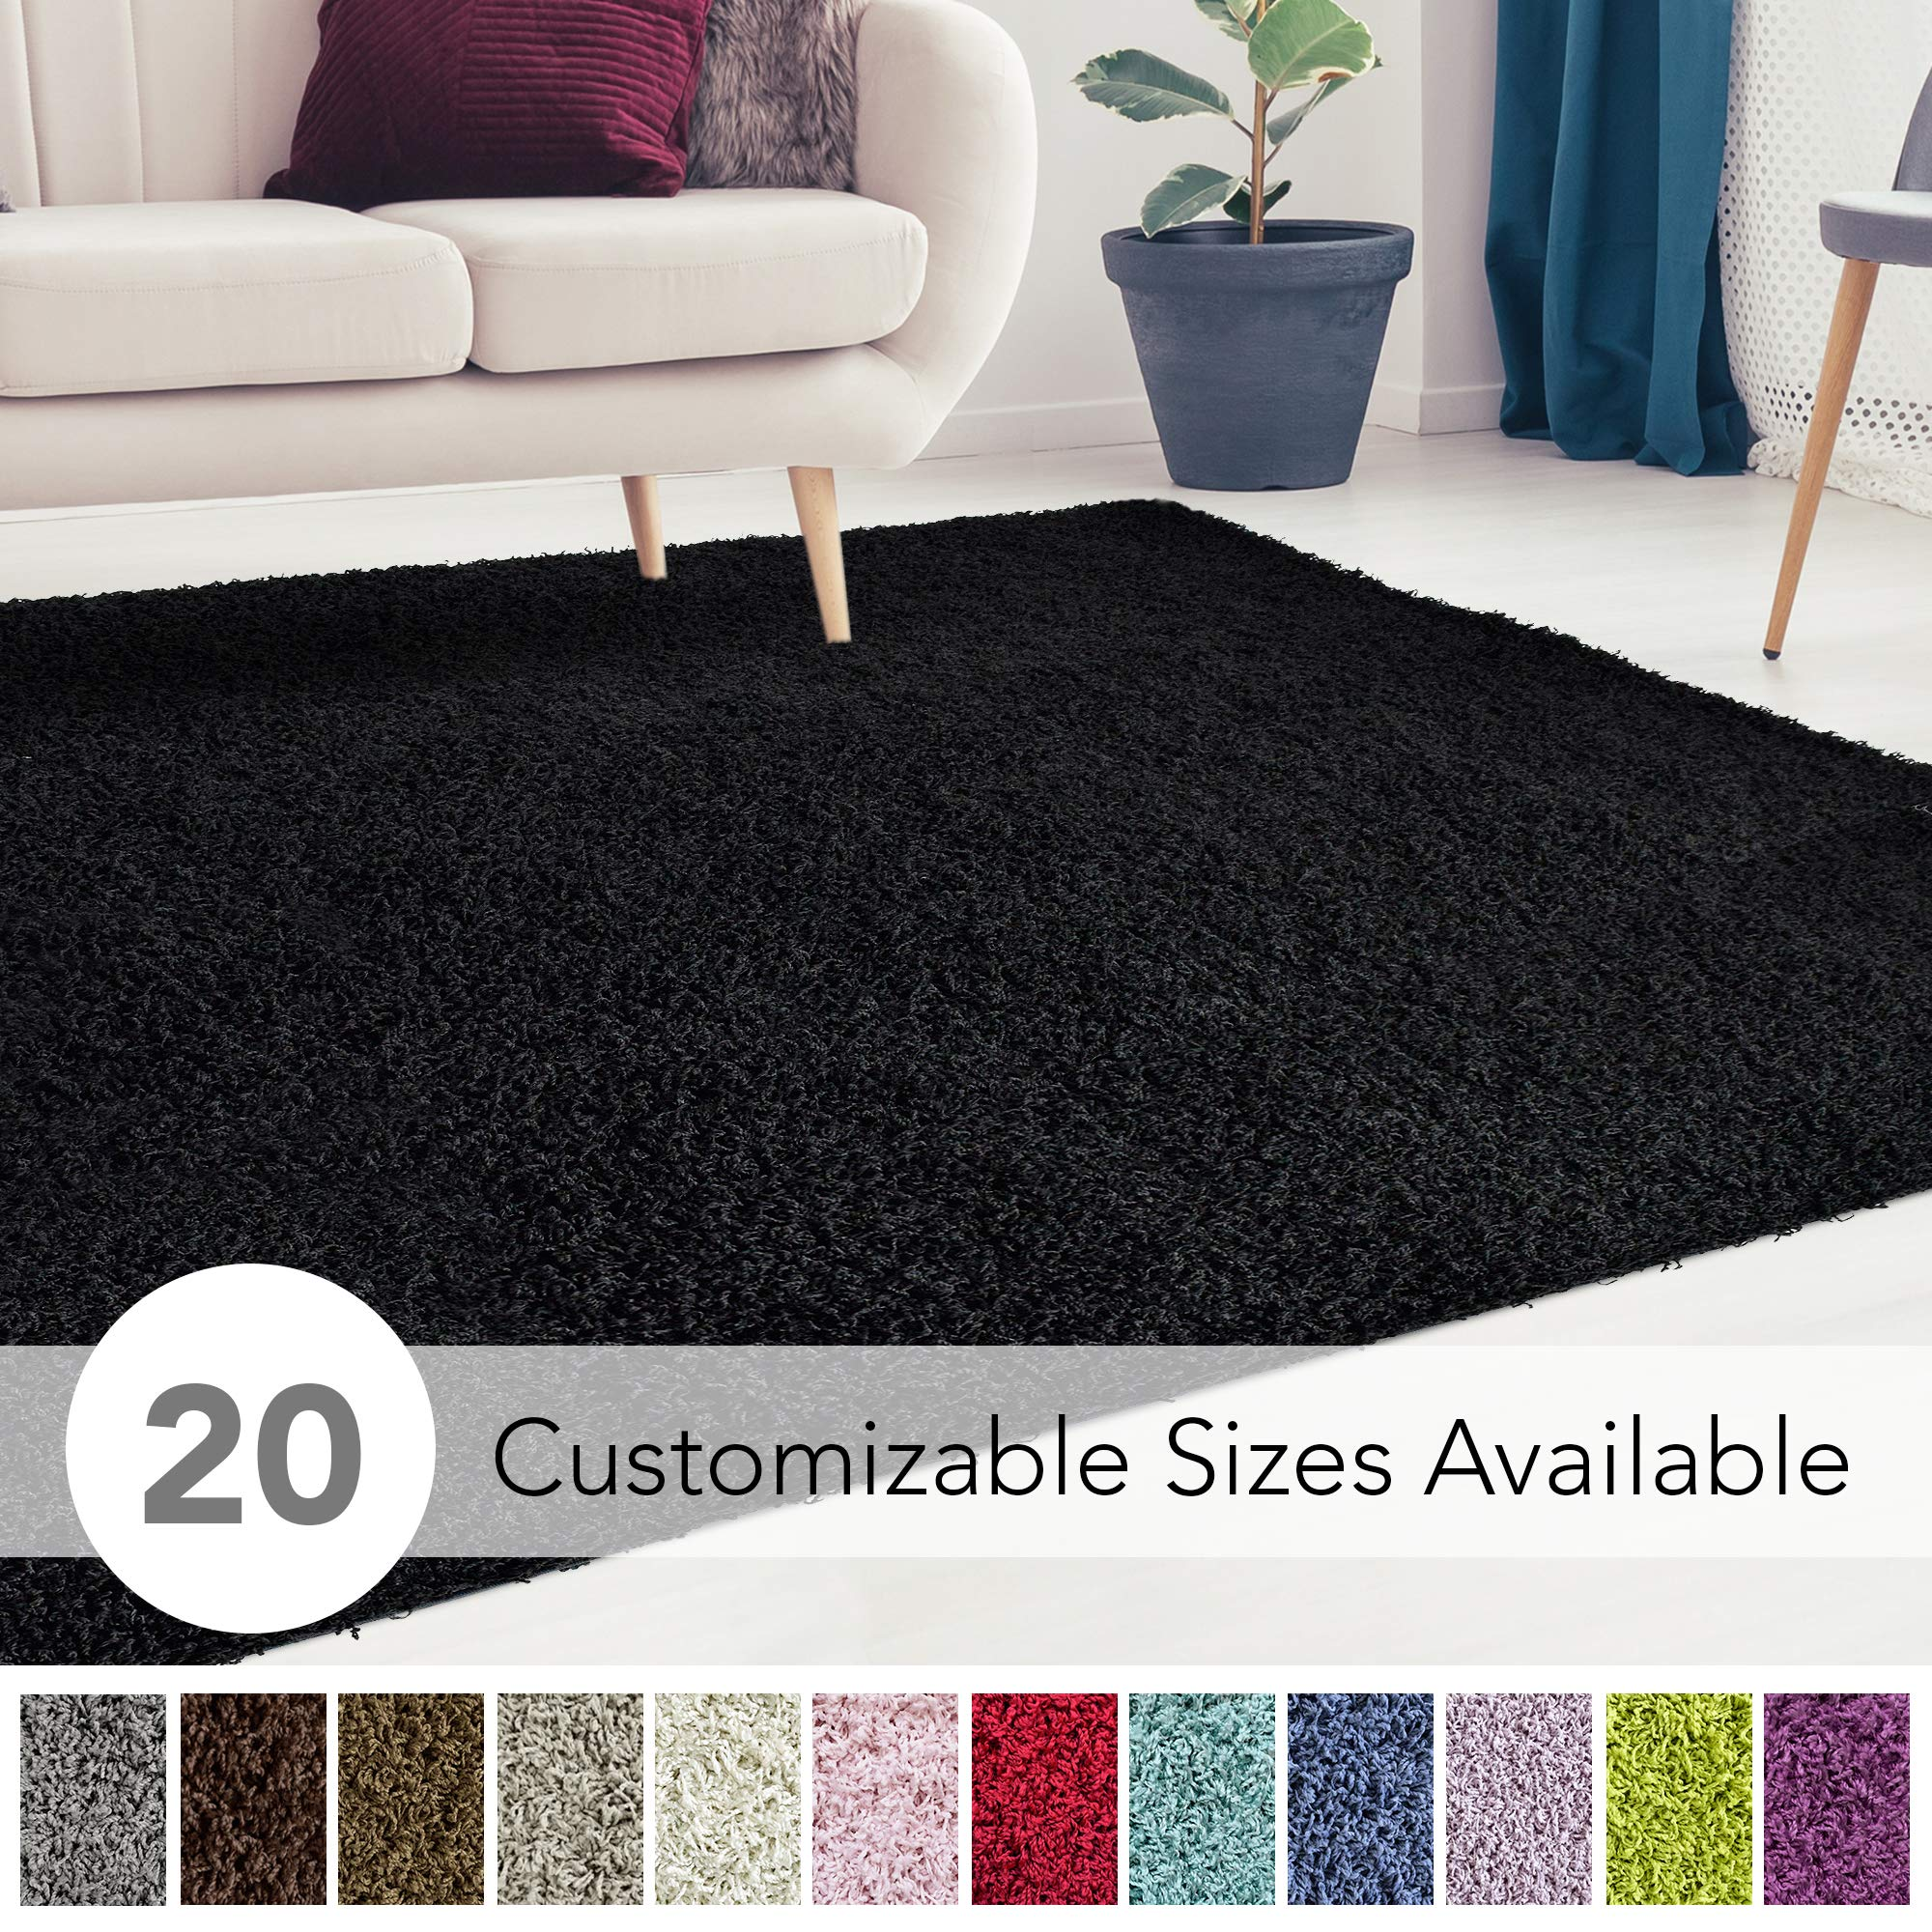 iCustomRug Cozy and Super Soft Plush Solid Shag Rug Ideal to Enhance Your Living Room and Bedroom Decor in 16 Colors / 20 Custom Sizes 4' X 6' Black